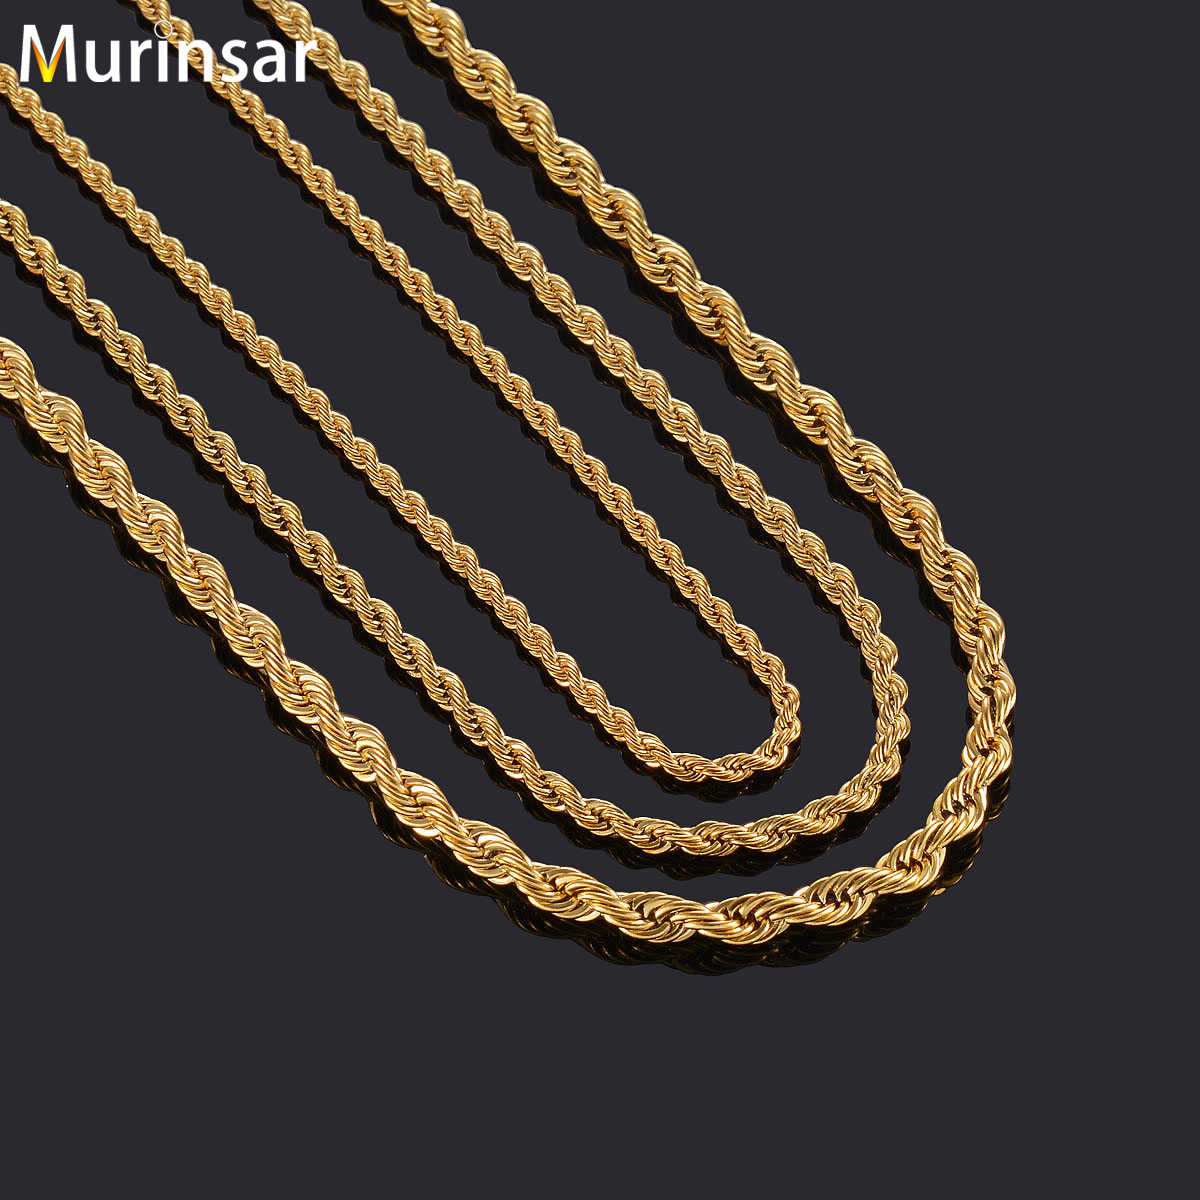 Gold Color Filled Stainless Steel Necklace Rope Chain for Men and Women Stainless Steel Chain Necklace High Quality Jewelry